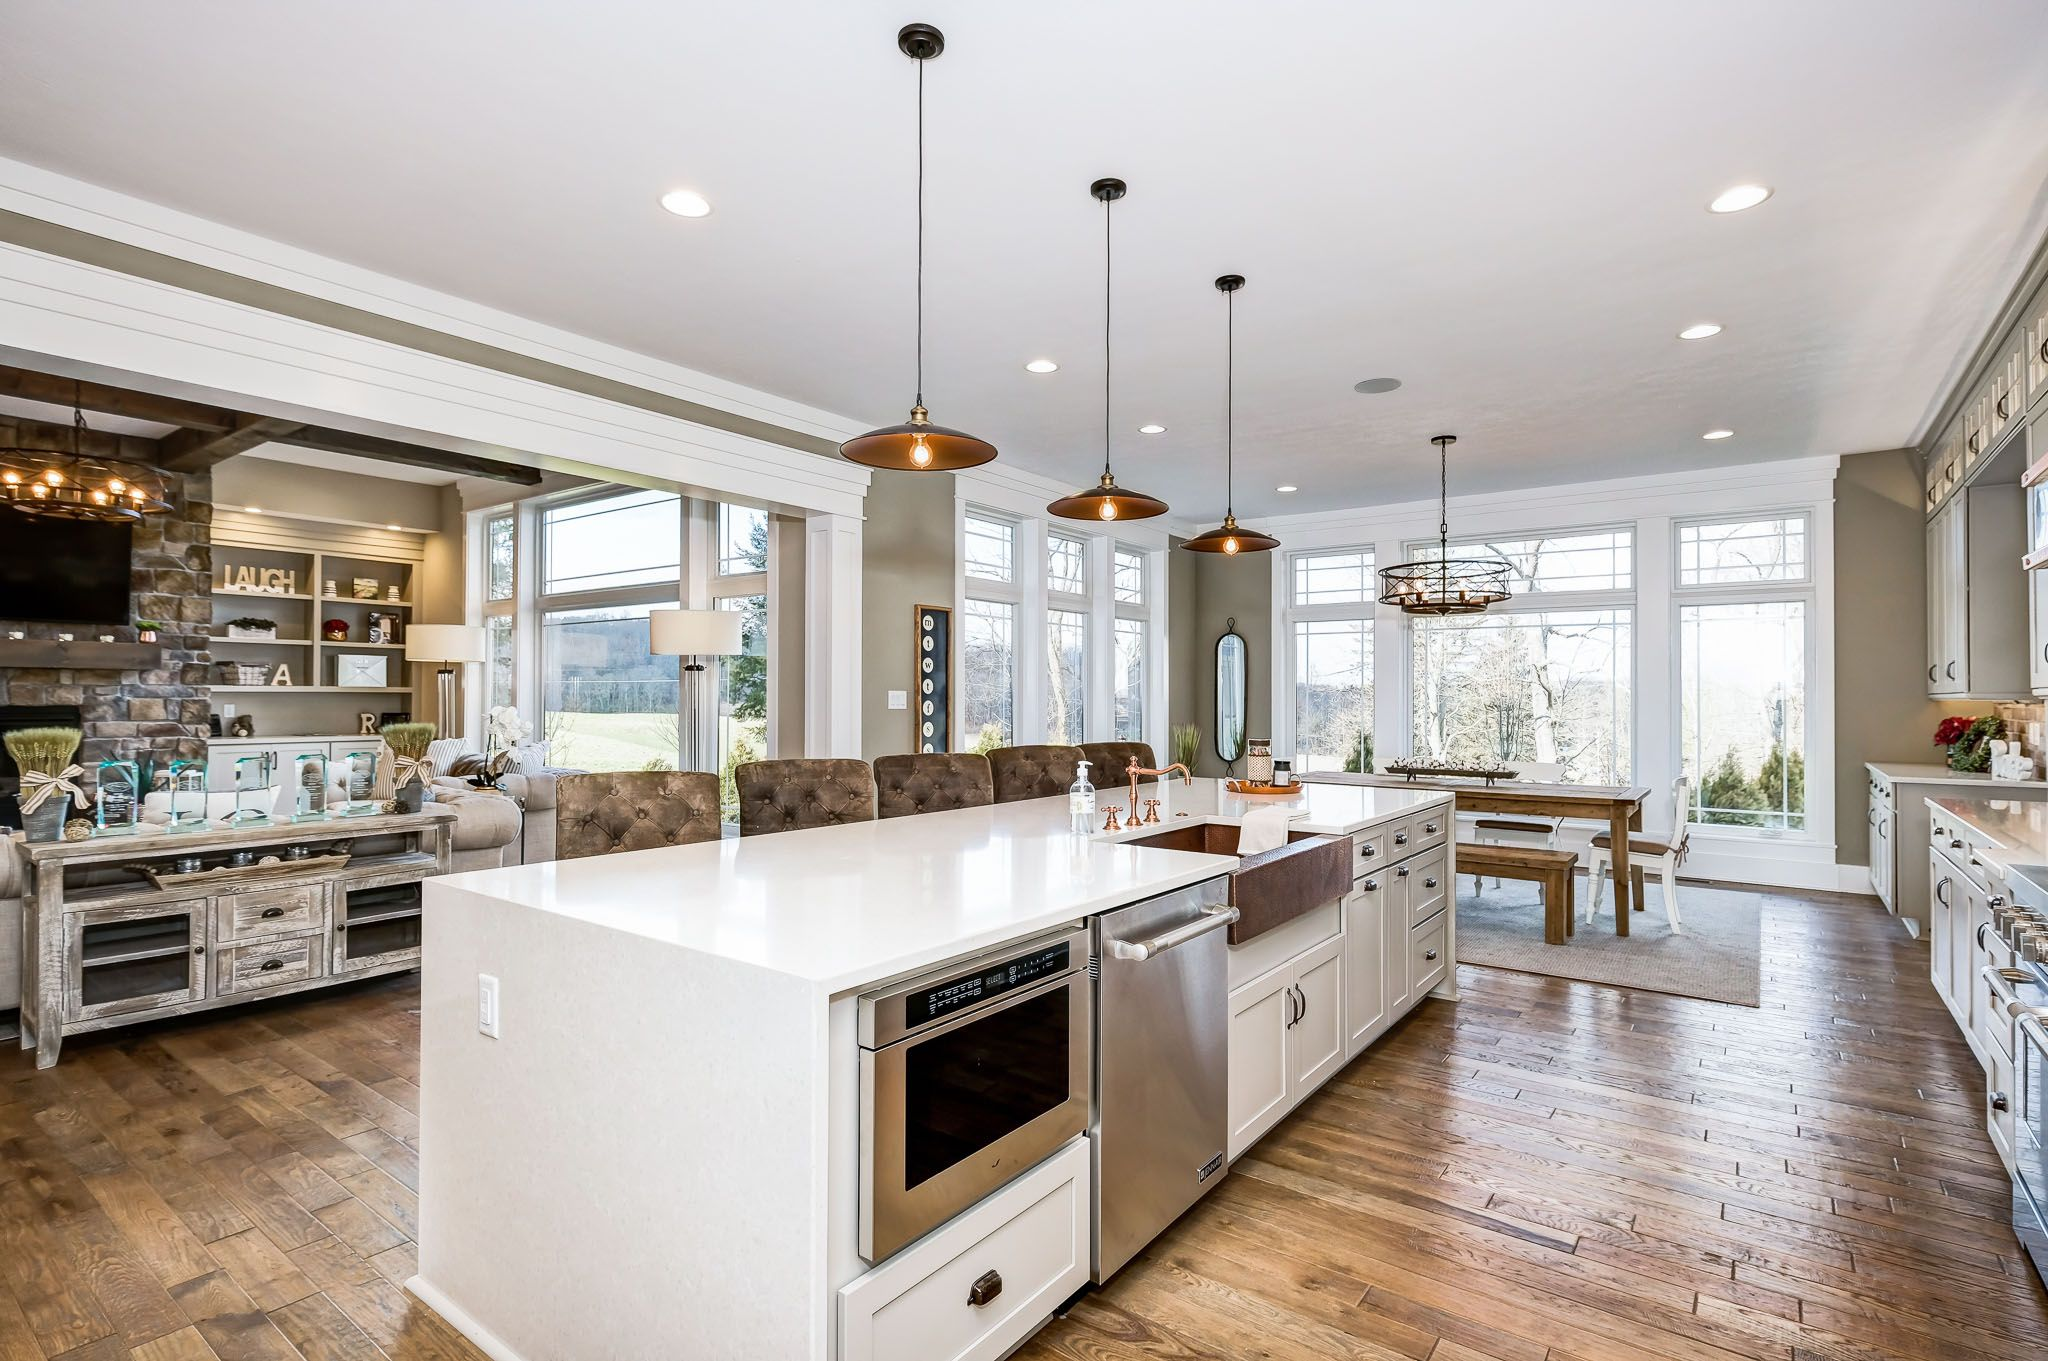 Kitchen featured in the Austin By Infinity Custom Homes in Pittsburgh, PA